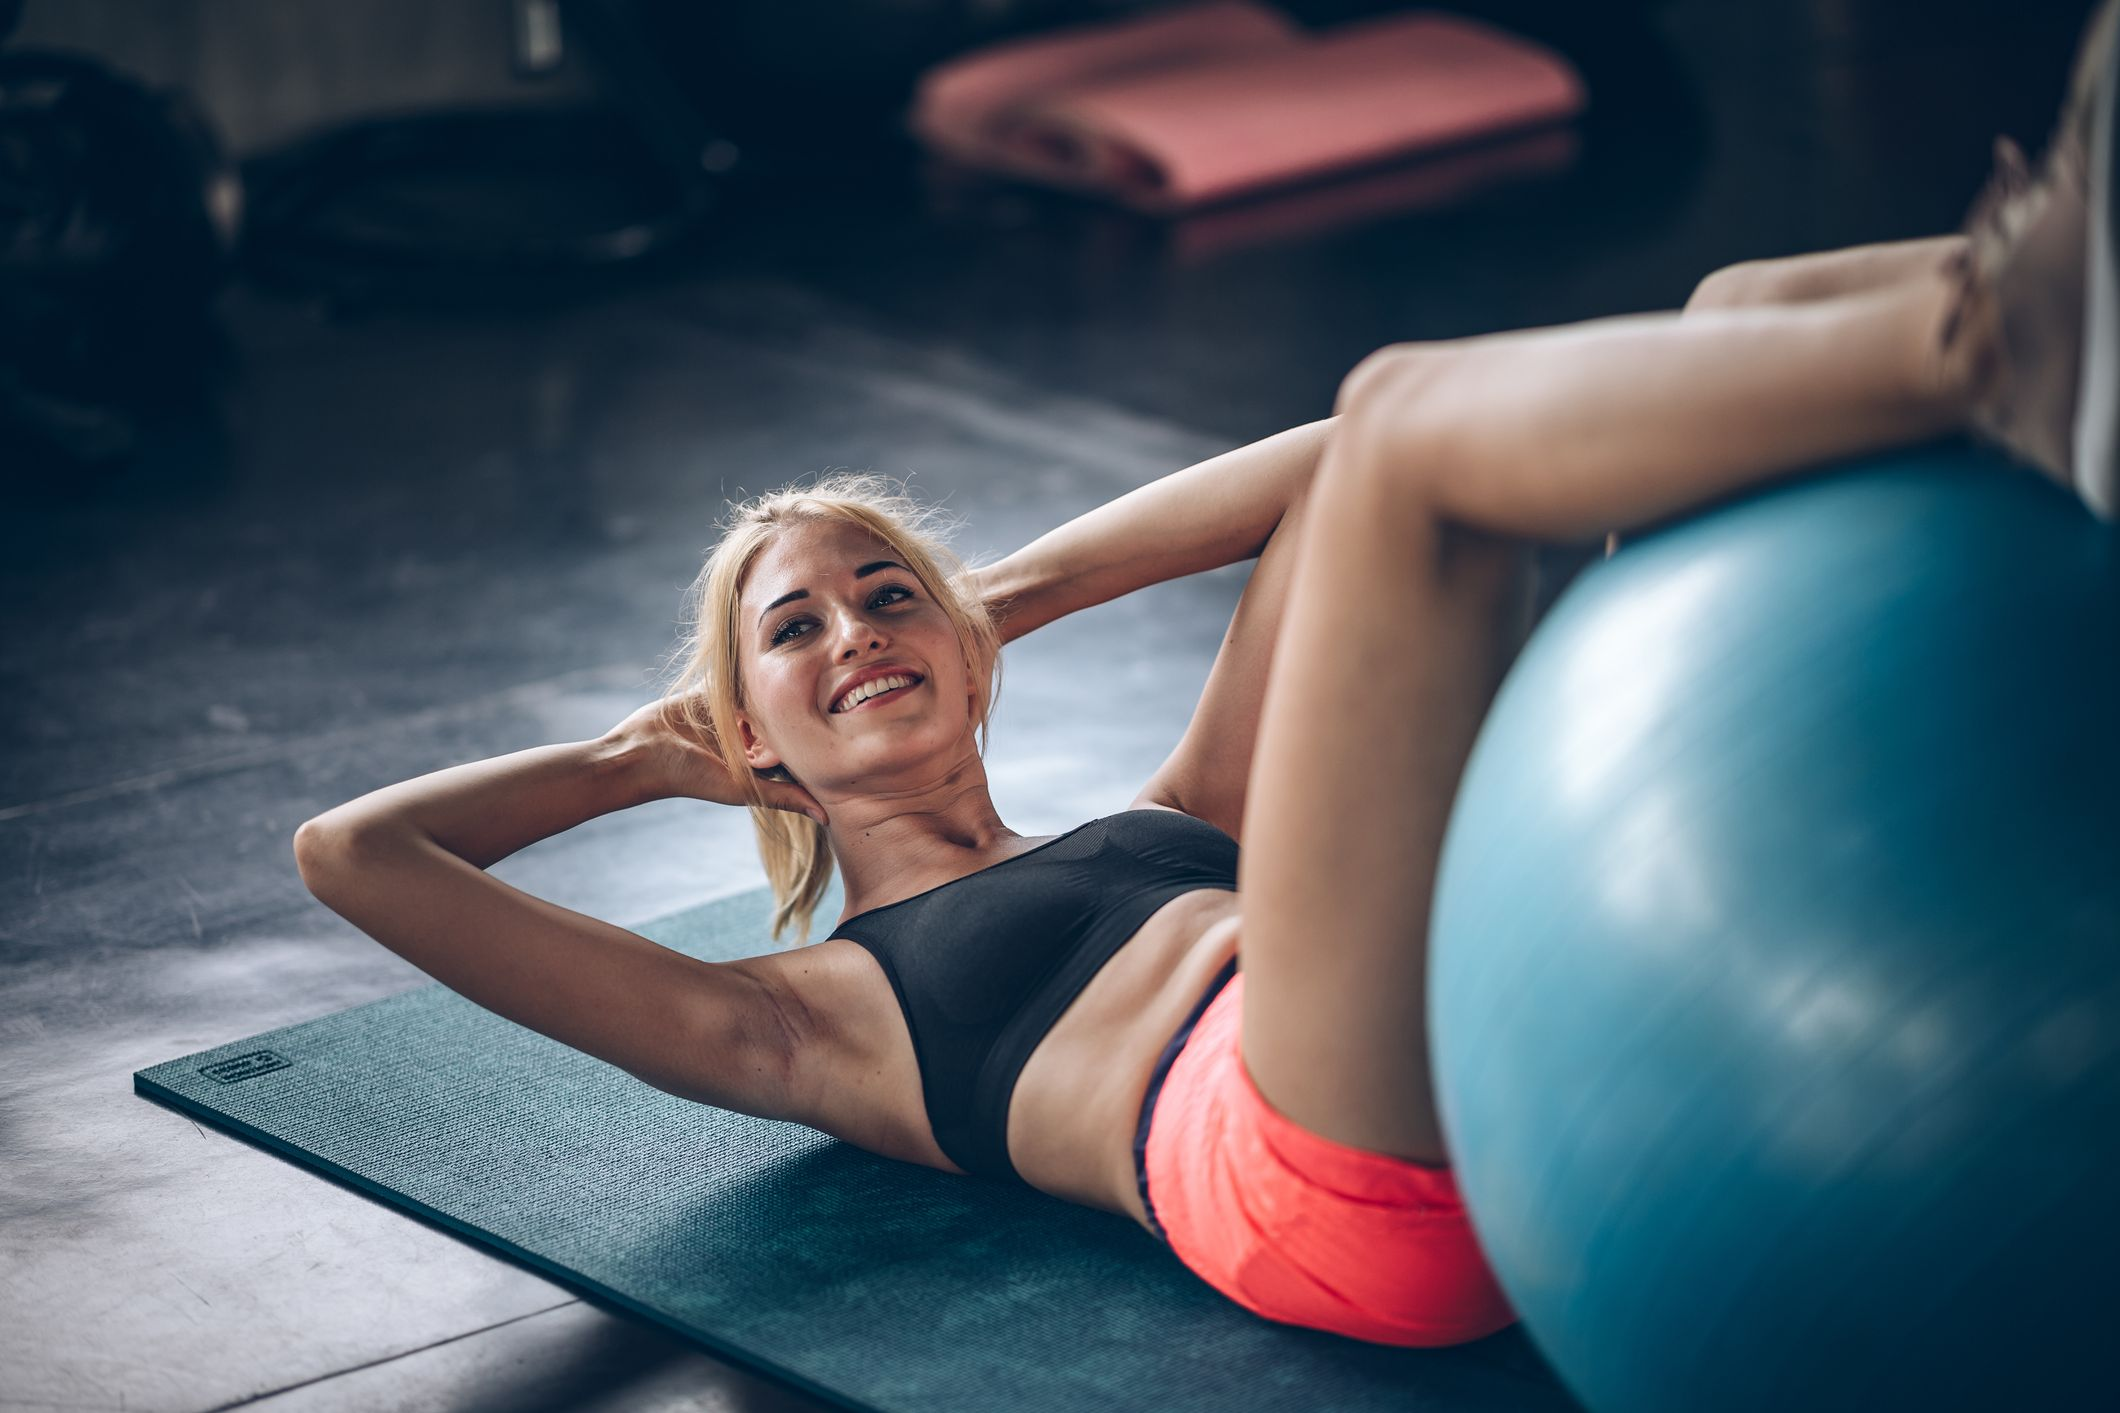 The best glute exercises to tone your butt